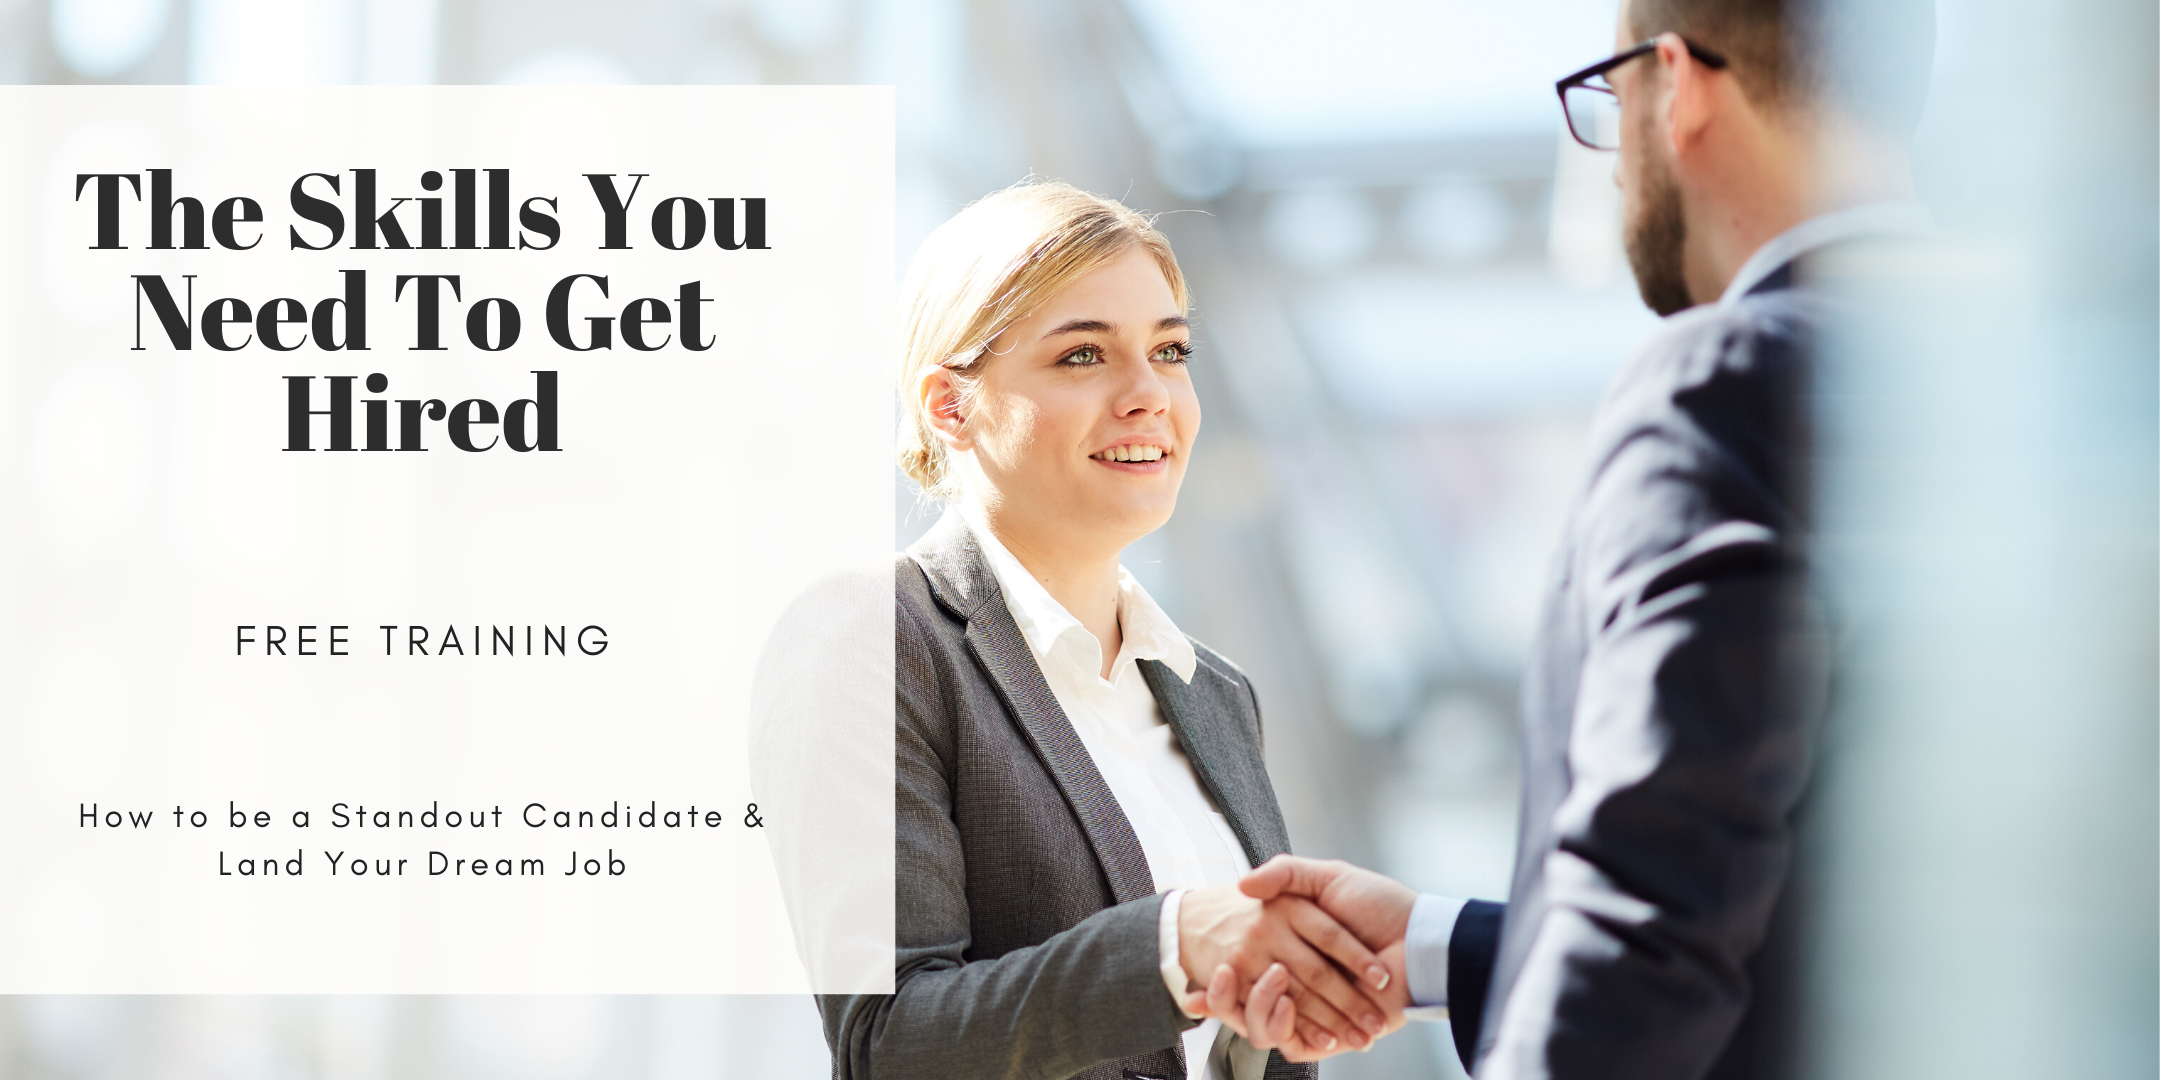 TRAINING: How to Land Your Dream Job (Career Workshop) Evansville, IN